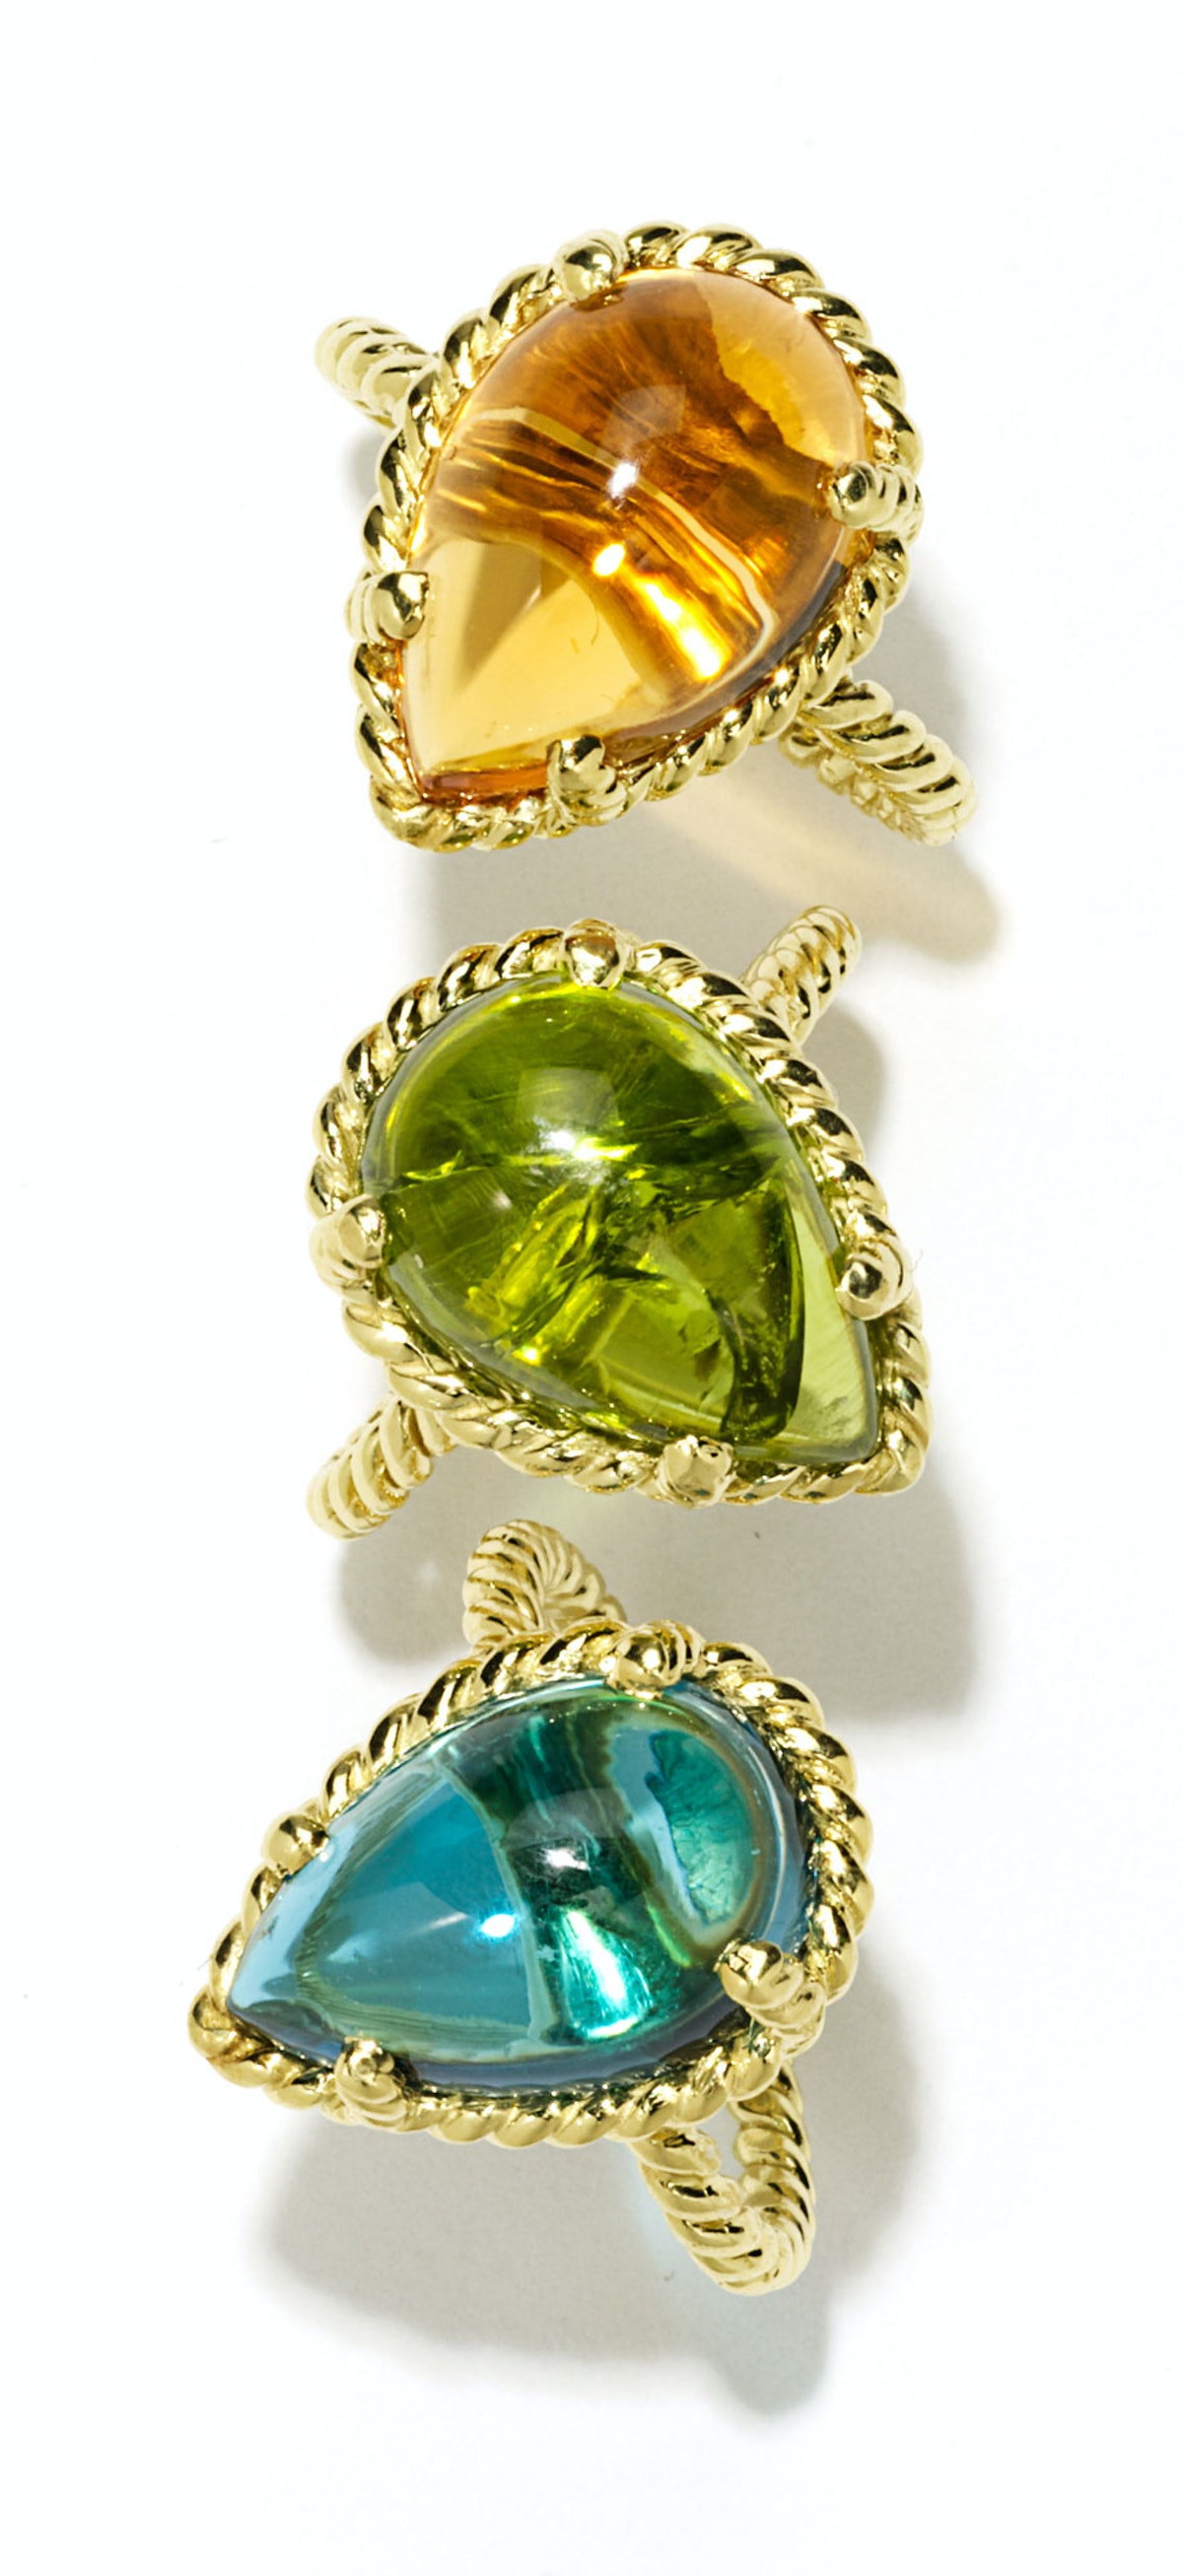 Cassis (from top) gold and citrine ring, $1,620, gold and peridot ring, $5,095, and gold and topaz ring, $1,685, [cassisjewels.com](http://www.cassisjewels.com/).